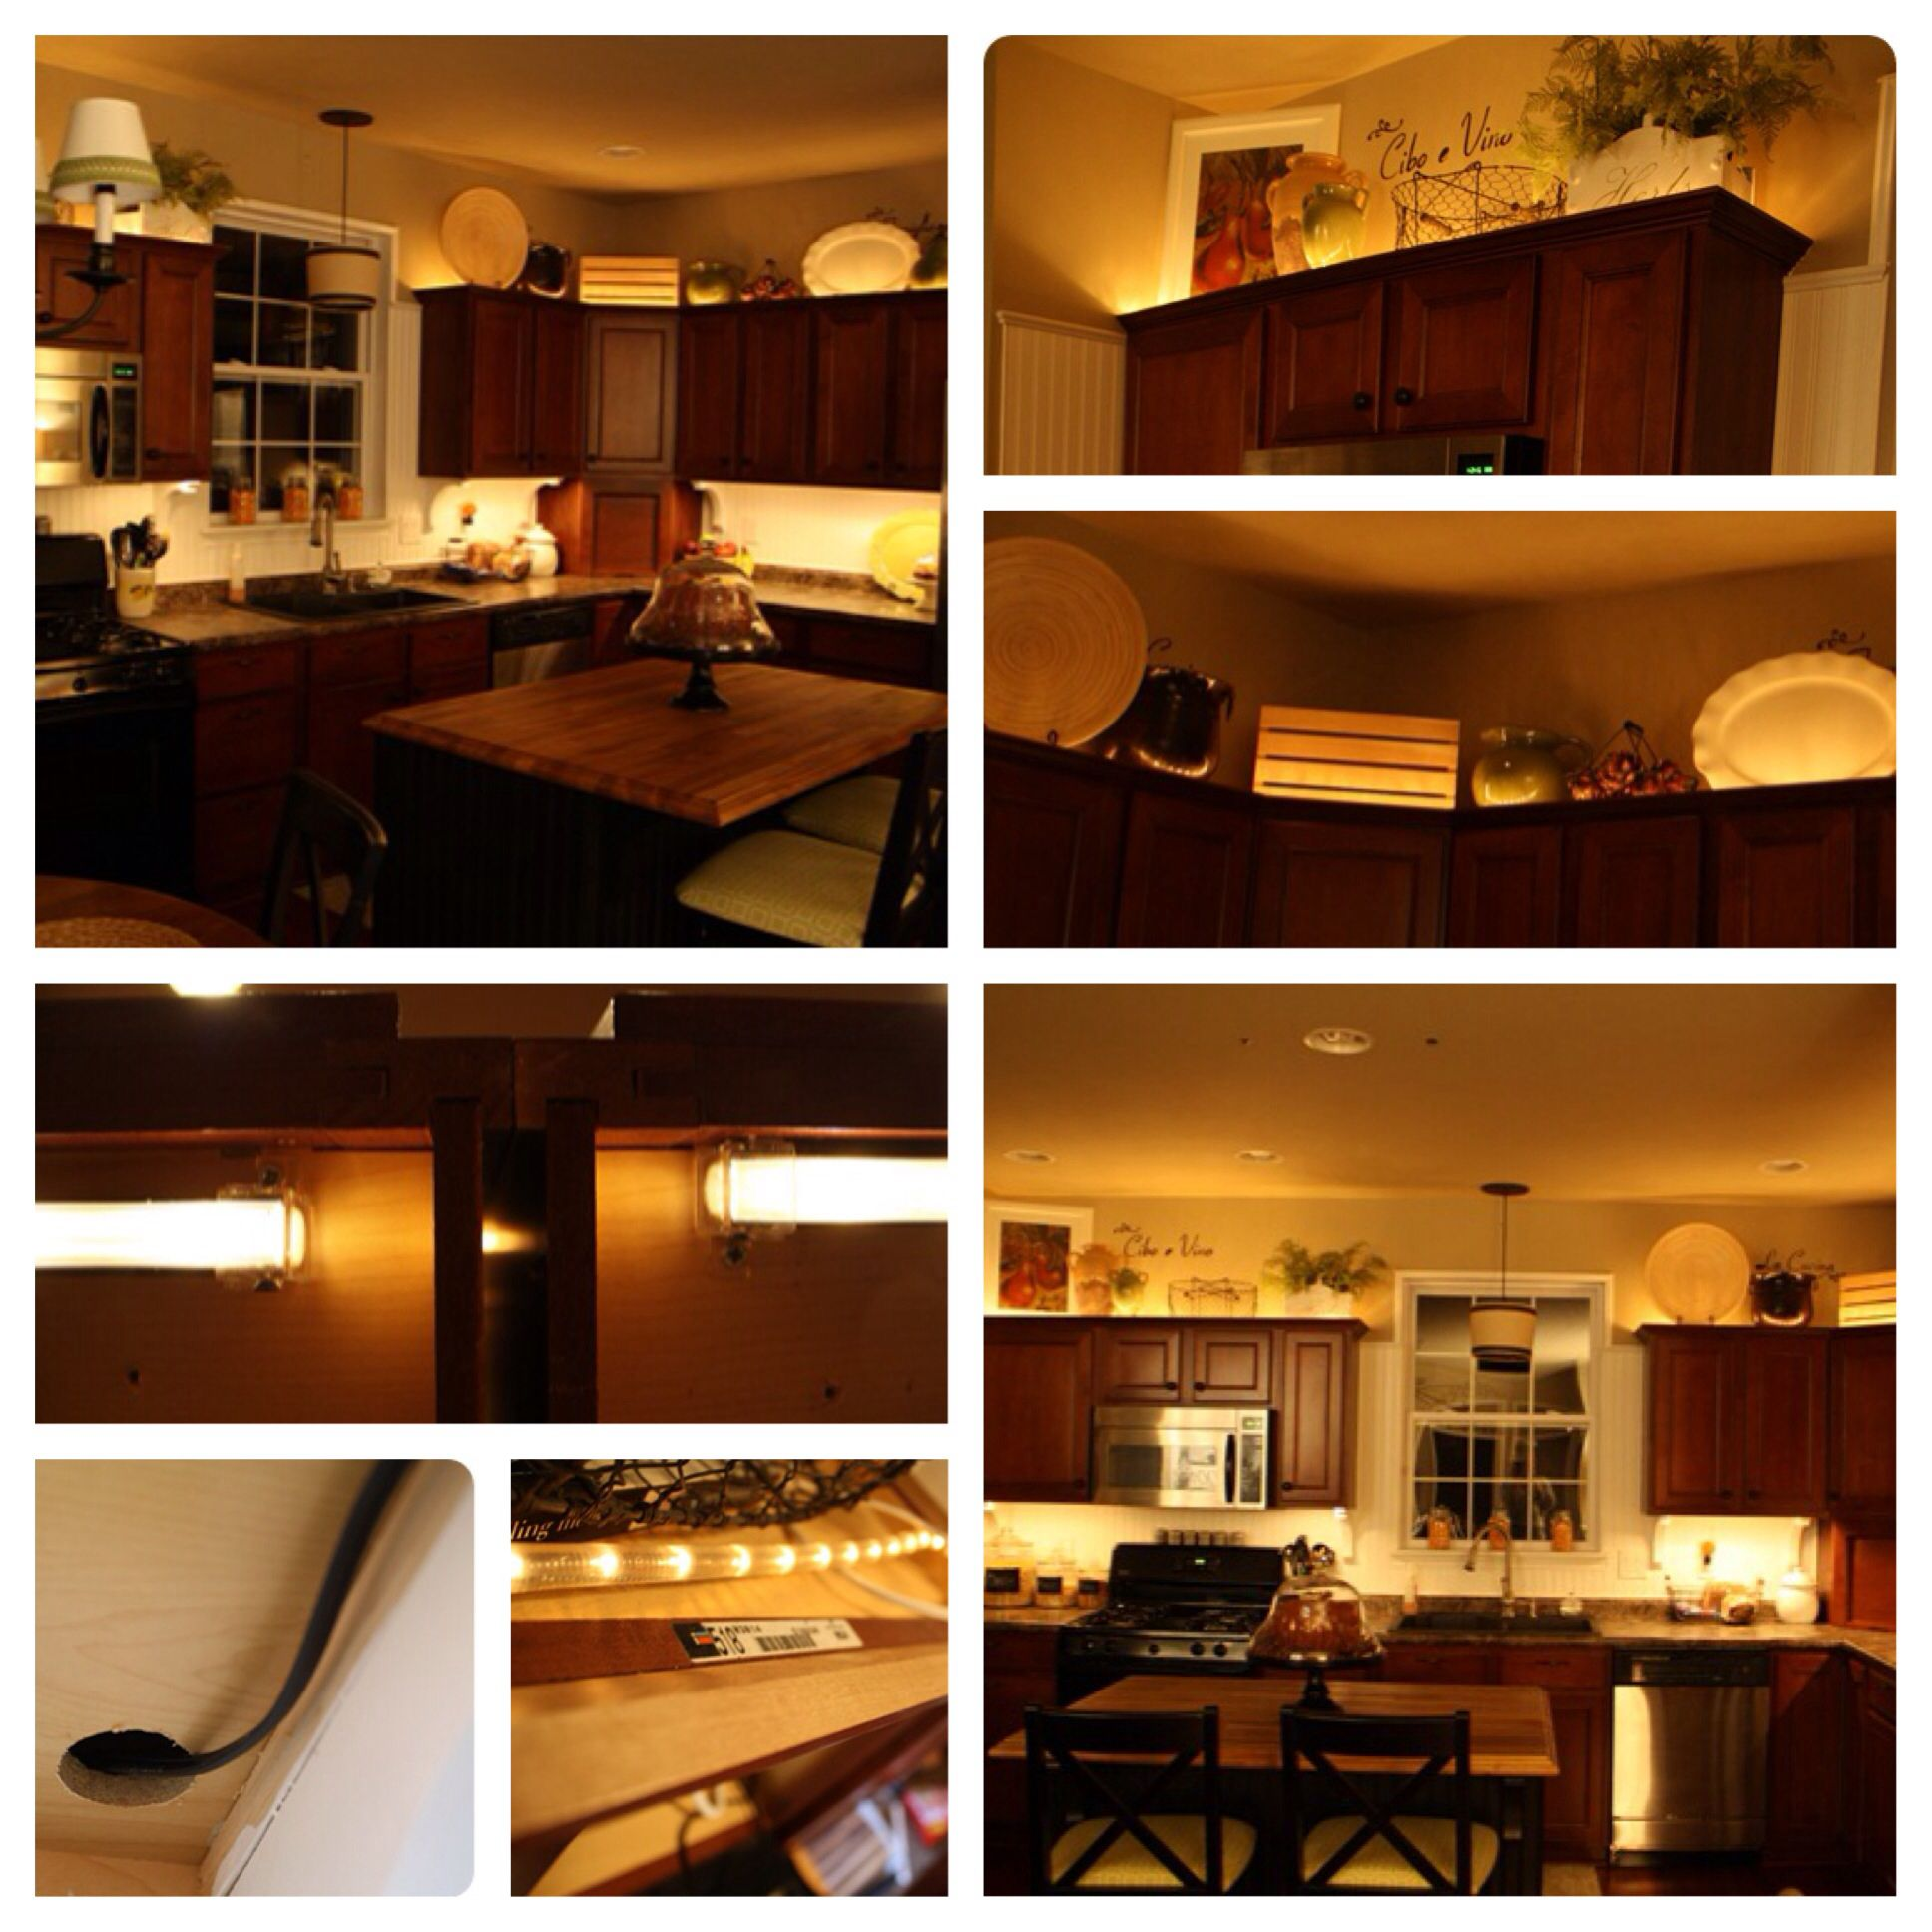 Kitchen Cabinets Under Lighting Adding Lights Above And Below The Cabinets Diy Christmas